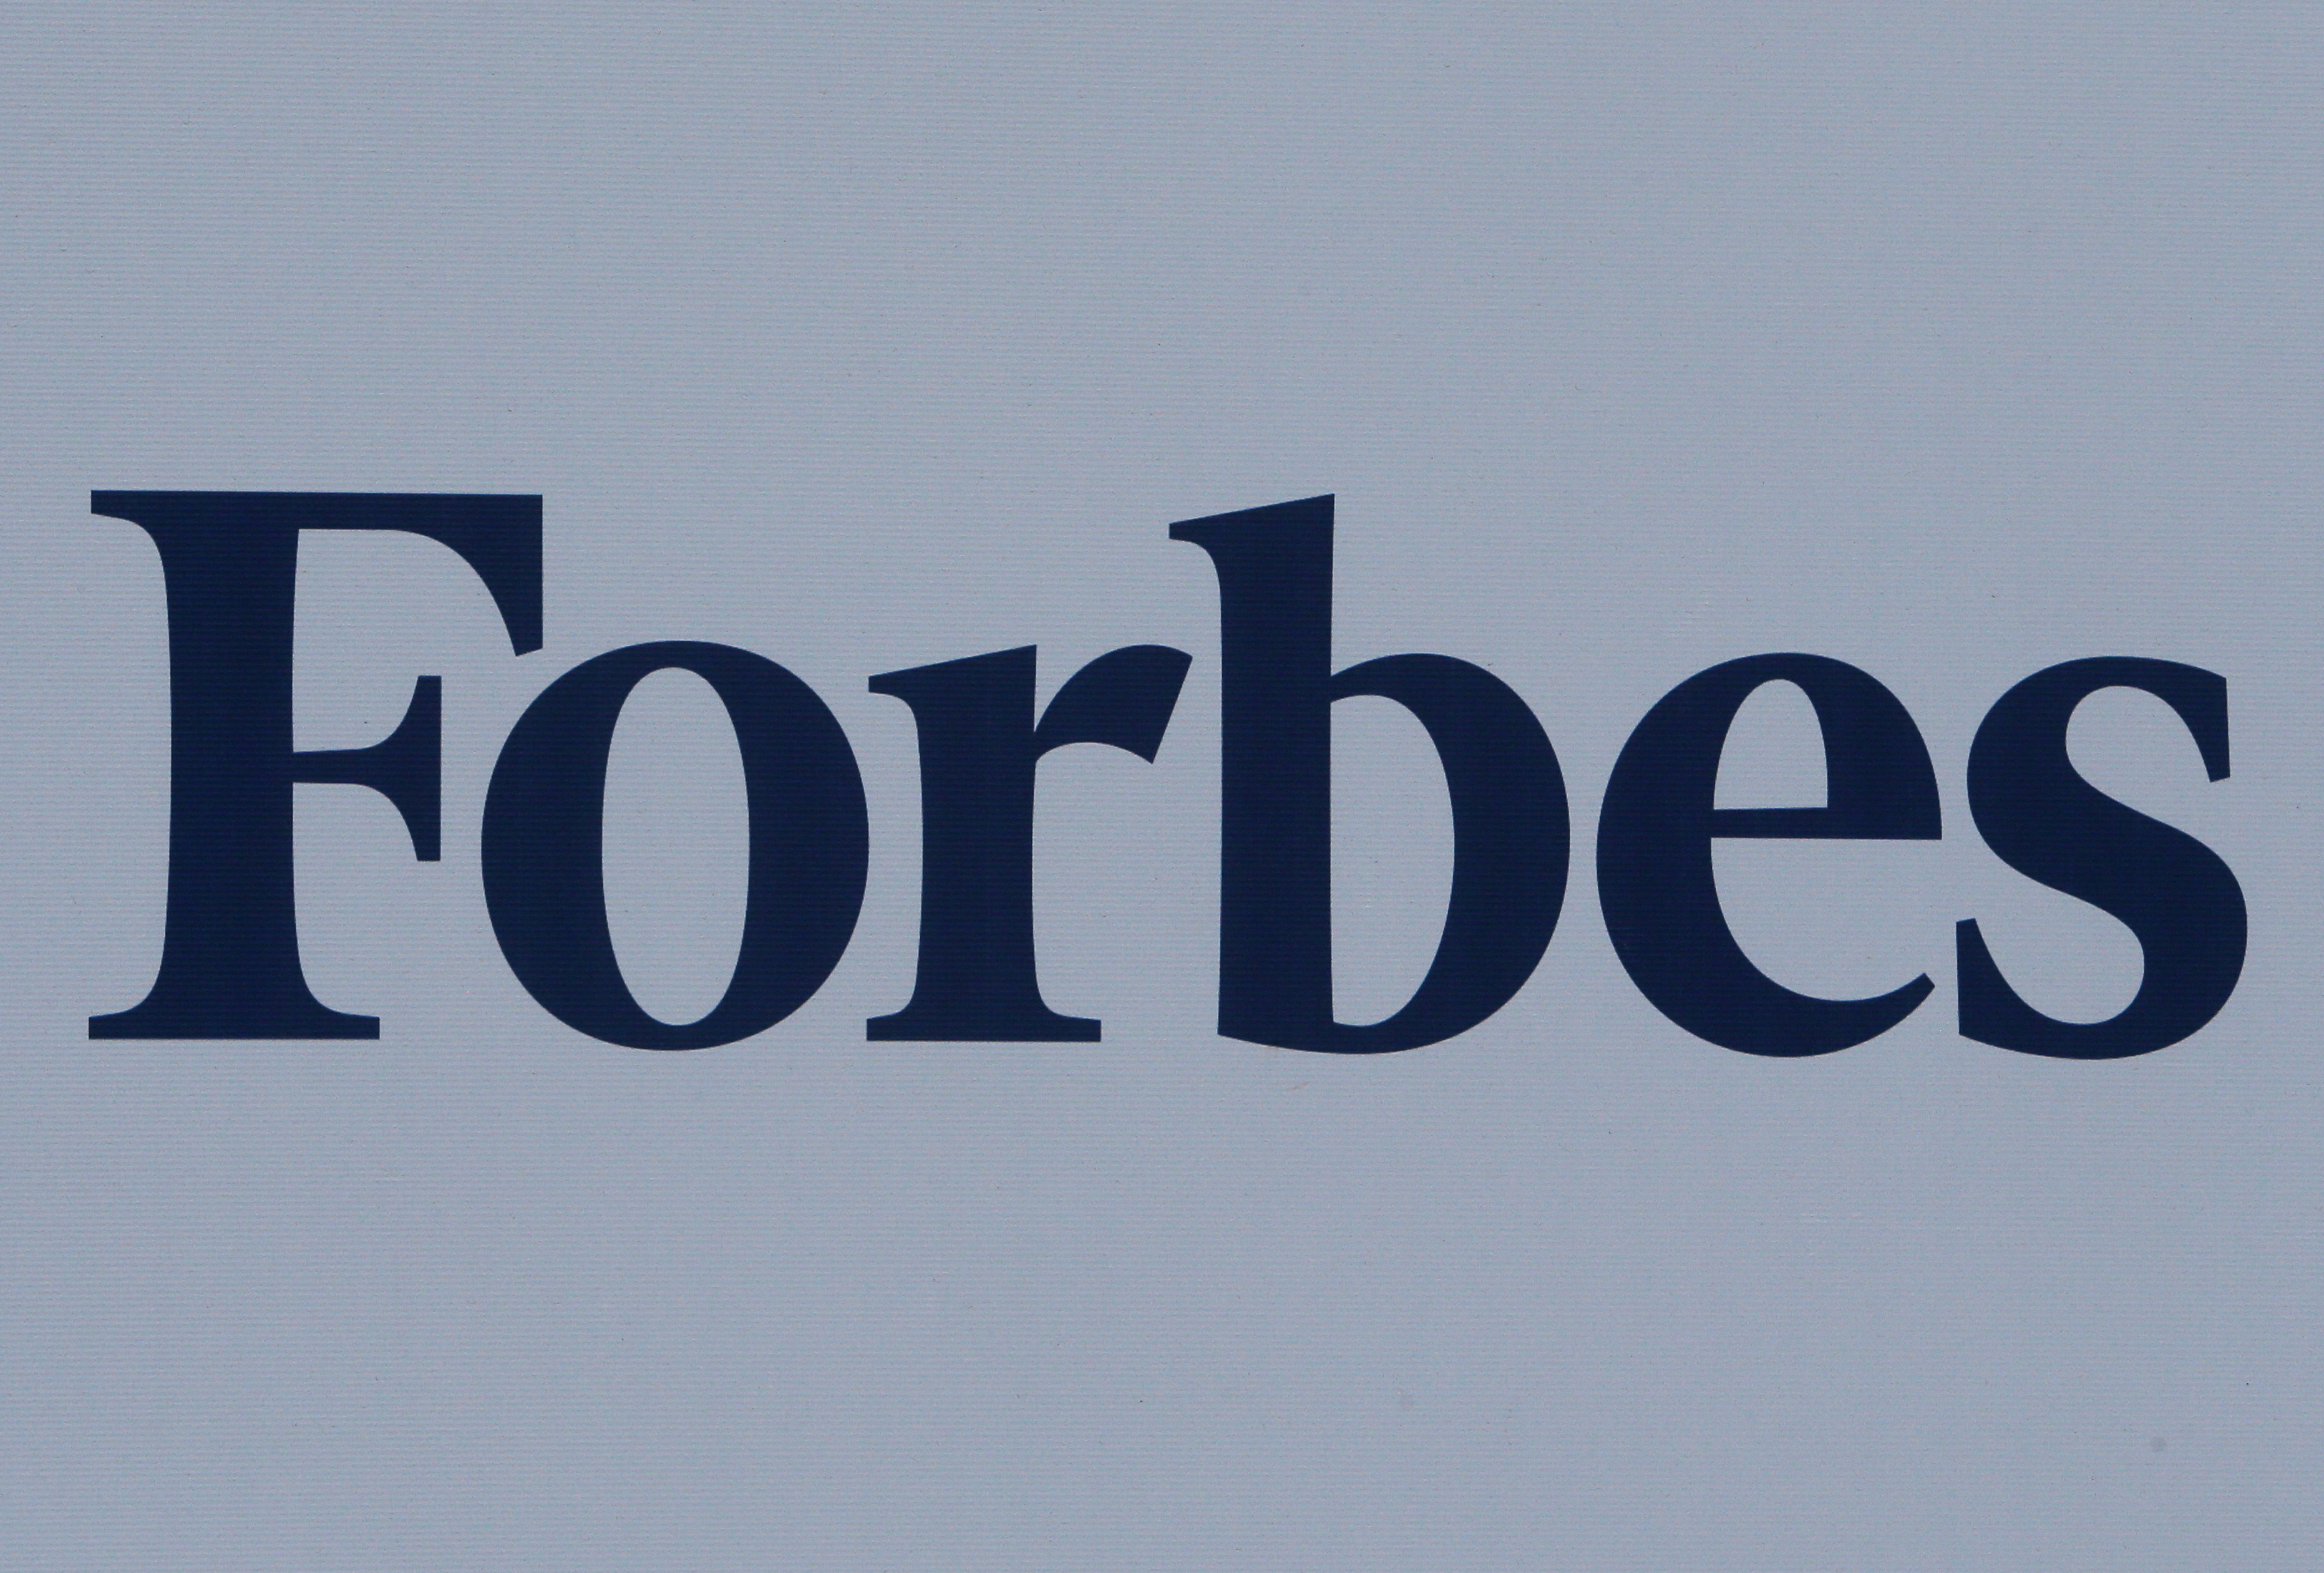 The logo of Forbes magazine is seen on a board at the St. Petersburg International Economic Forum 2017 (SPIEF 2017) in St. Petersburg, Russia, June 1, 2017. REUTERS/Sergei Karpukhin/File Photo